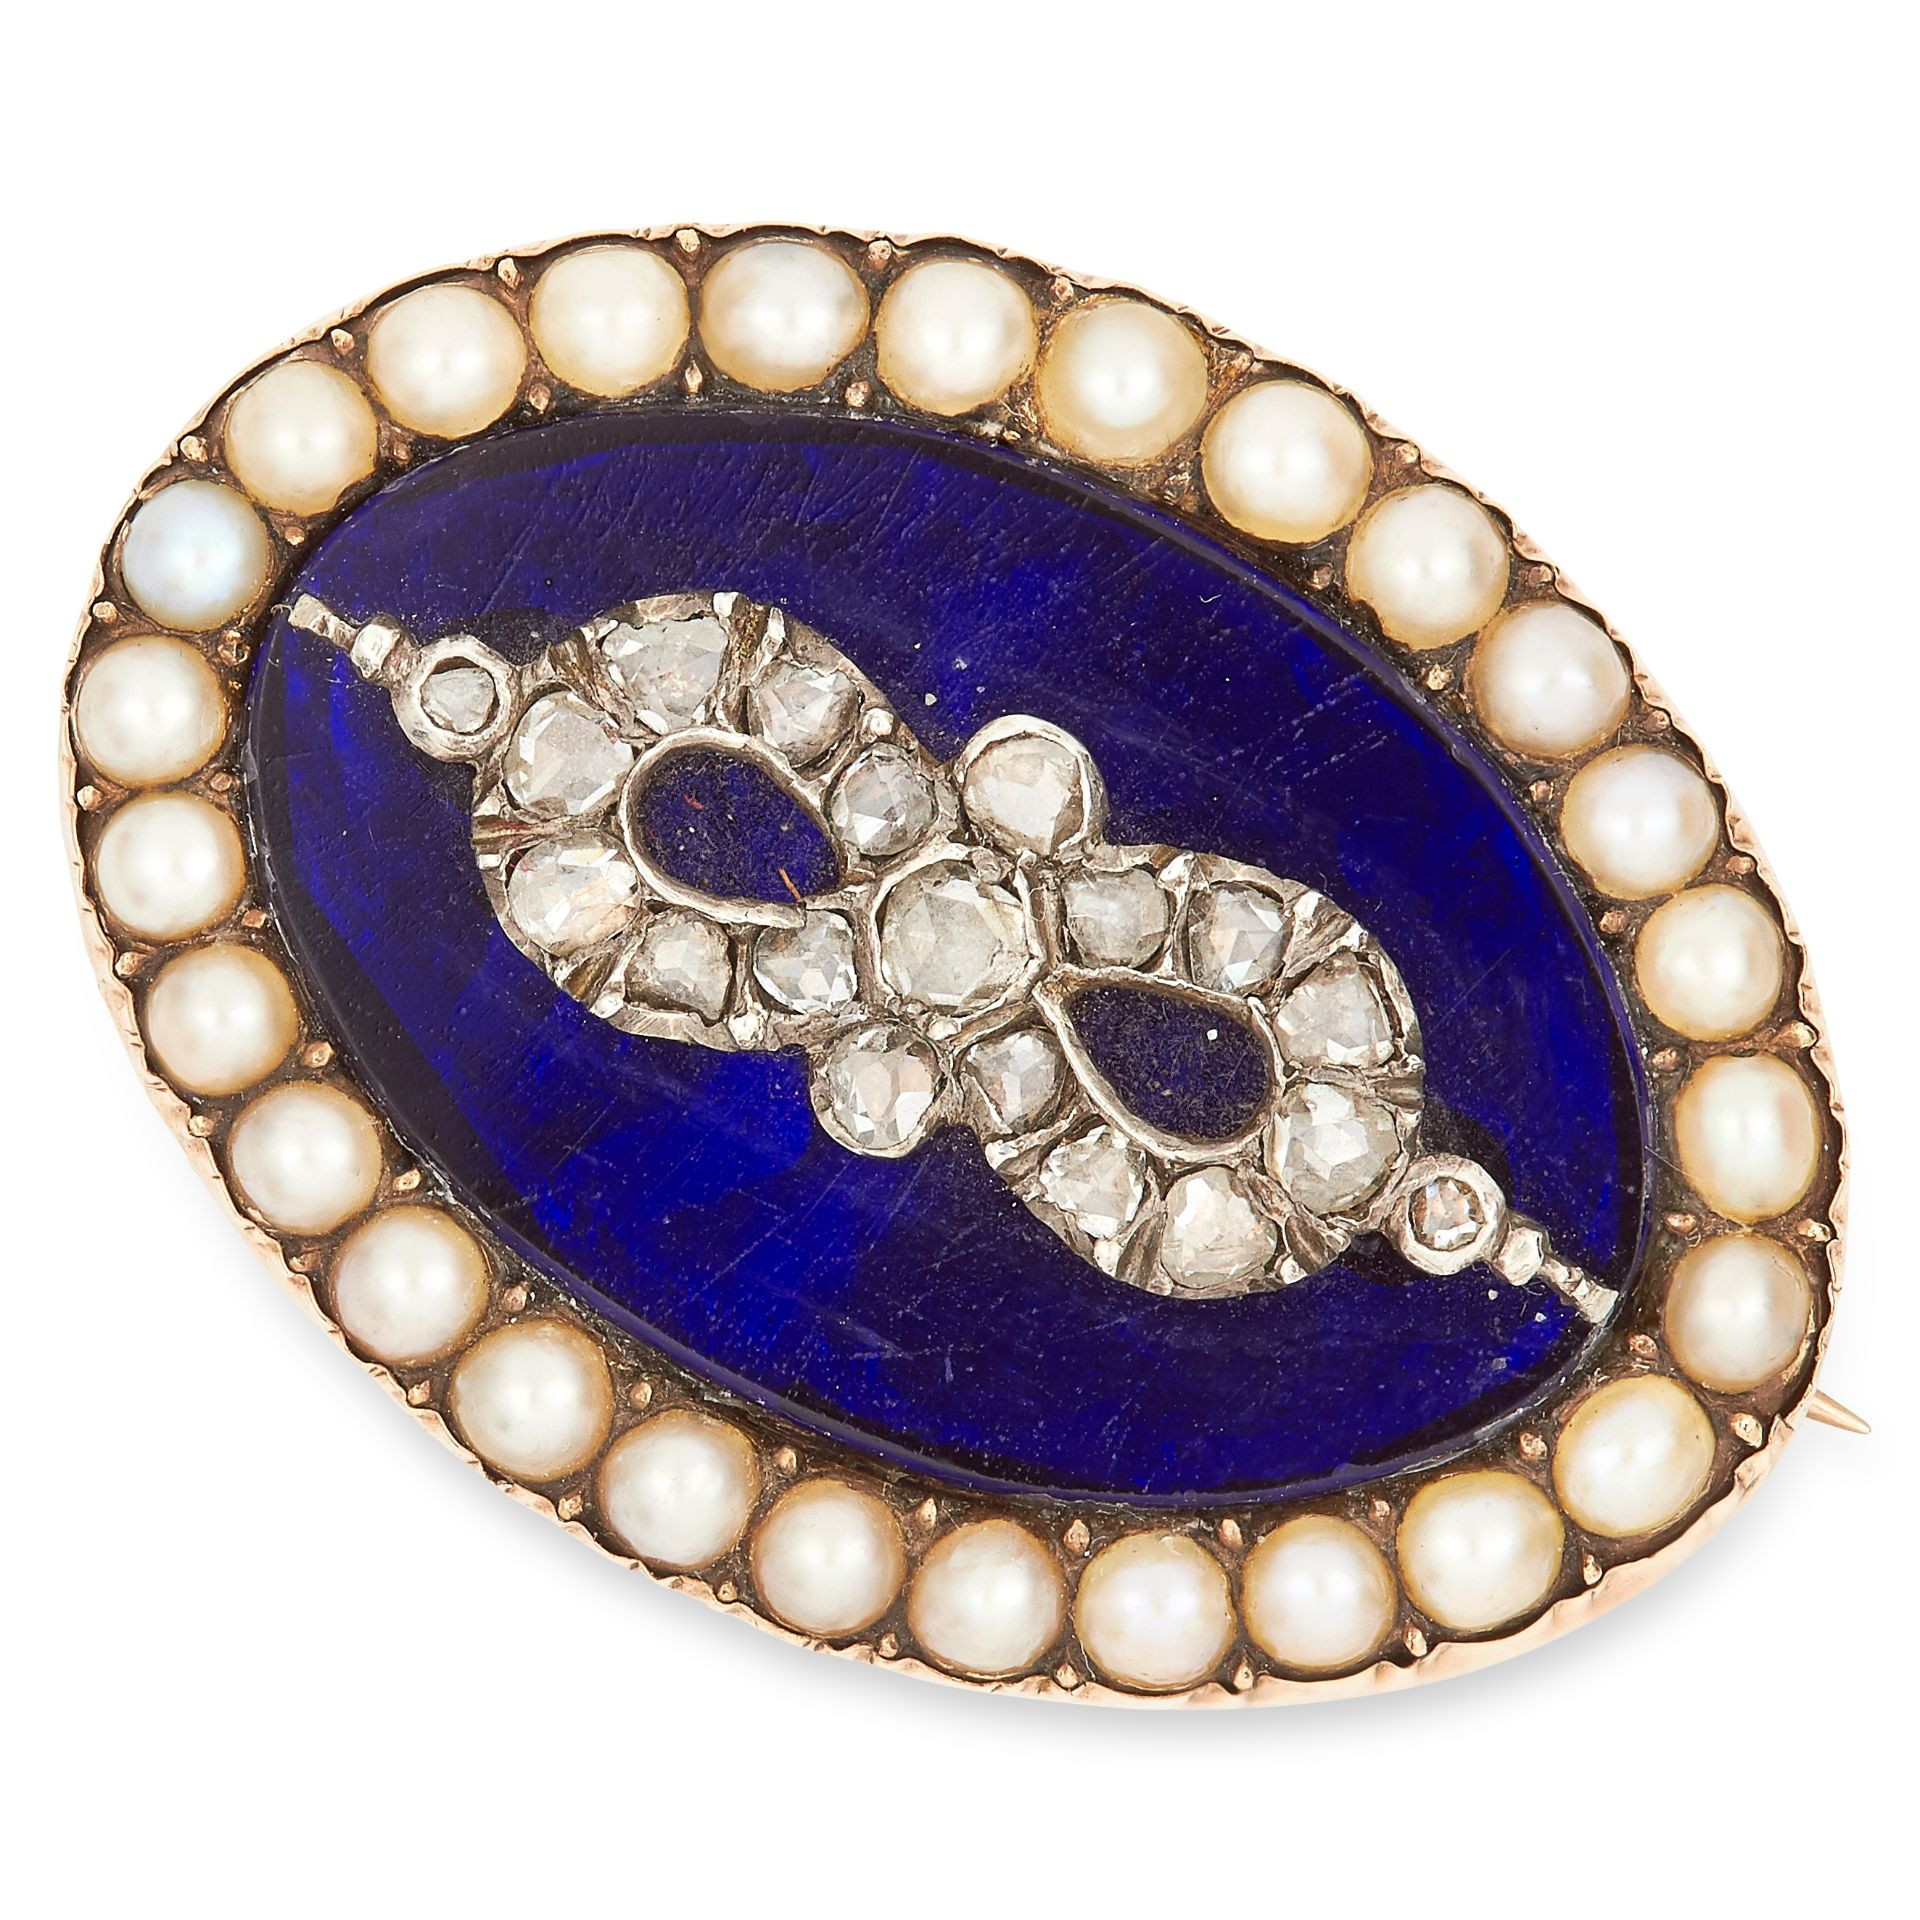 ANTIQUE PEARL, DIAMOND AND ENAMEL BROOCH set with blue enamel, seed pearls and rose cut diamonds,